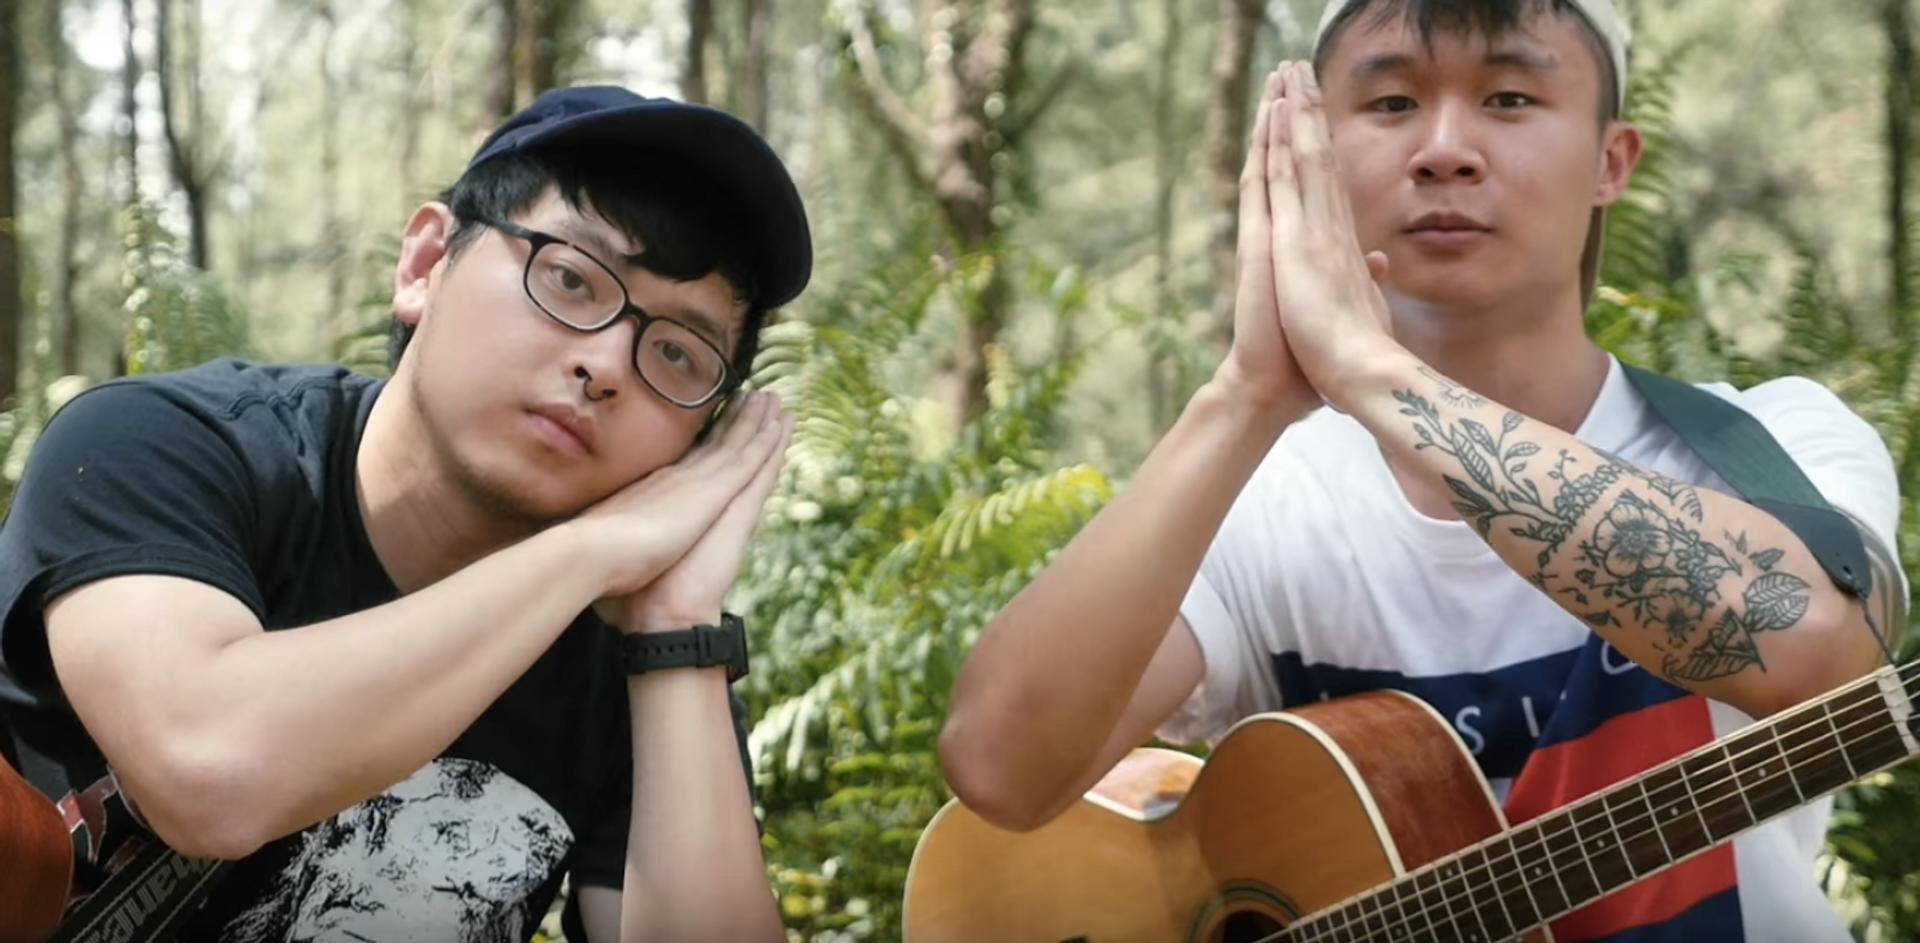 WATCH: Forests hike a Coney Island forest to perform 'Tamago' for Bandwagon Sessions